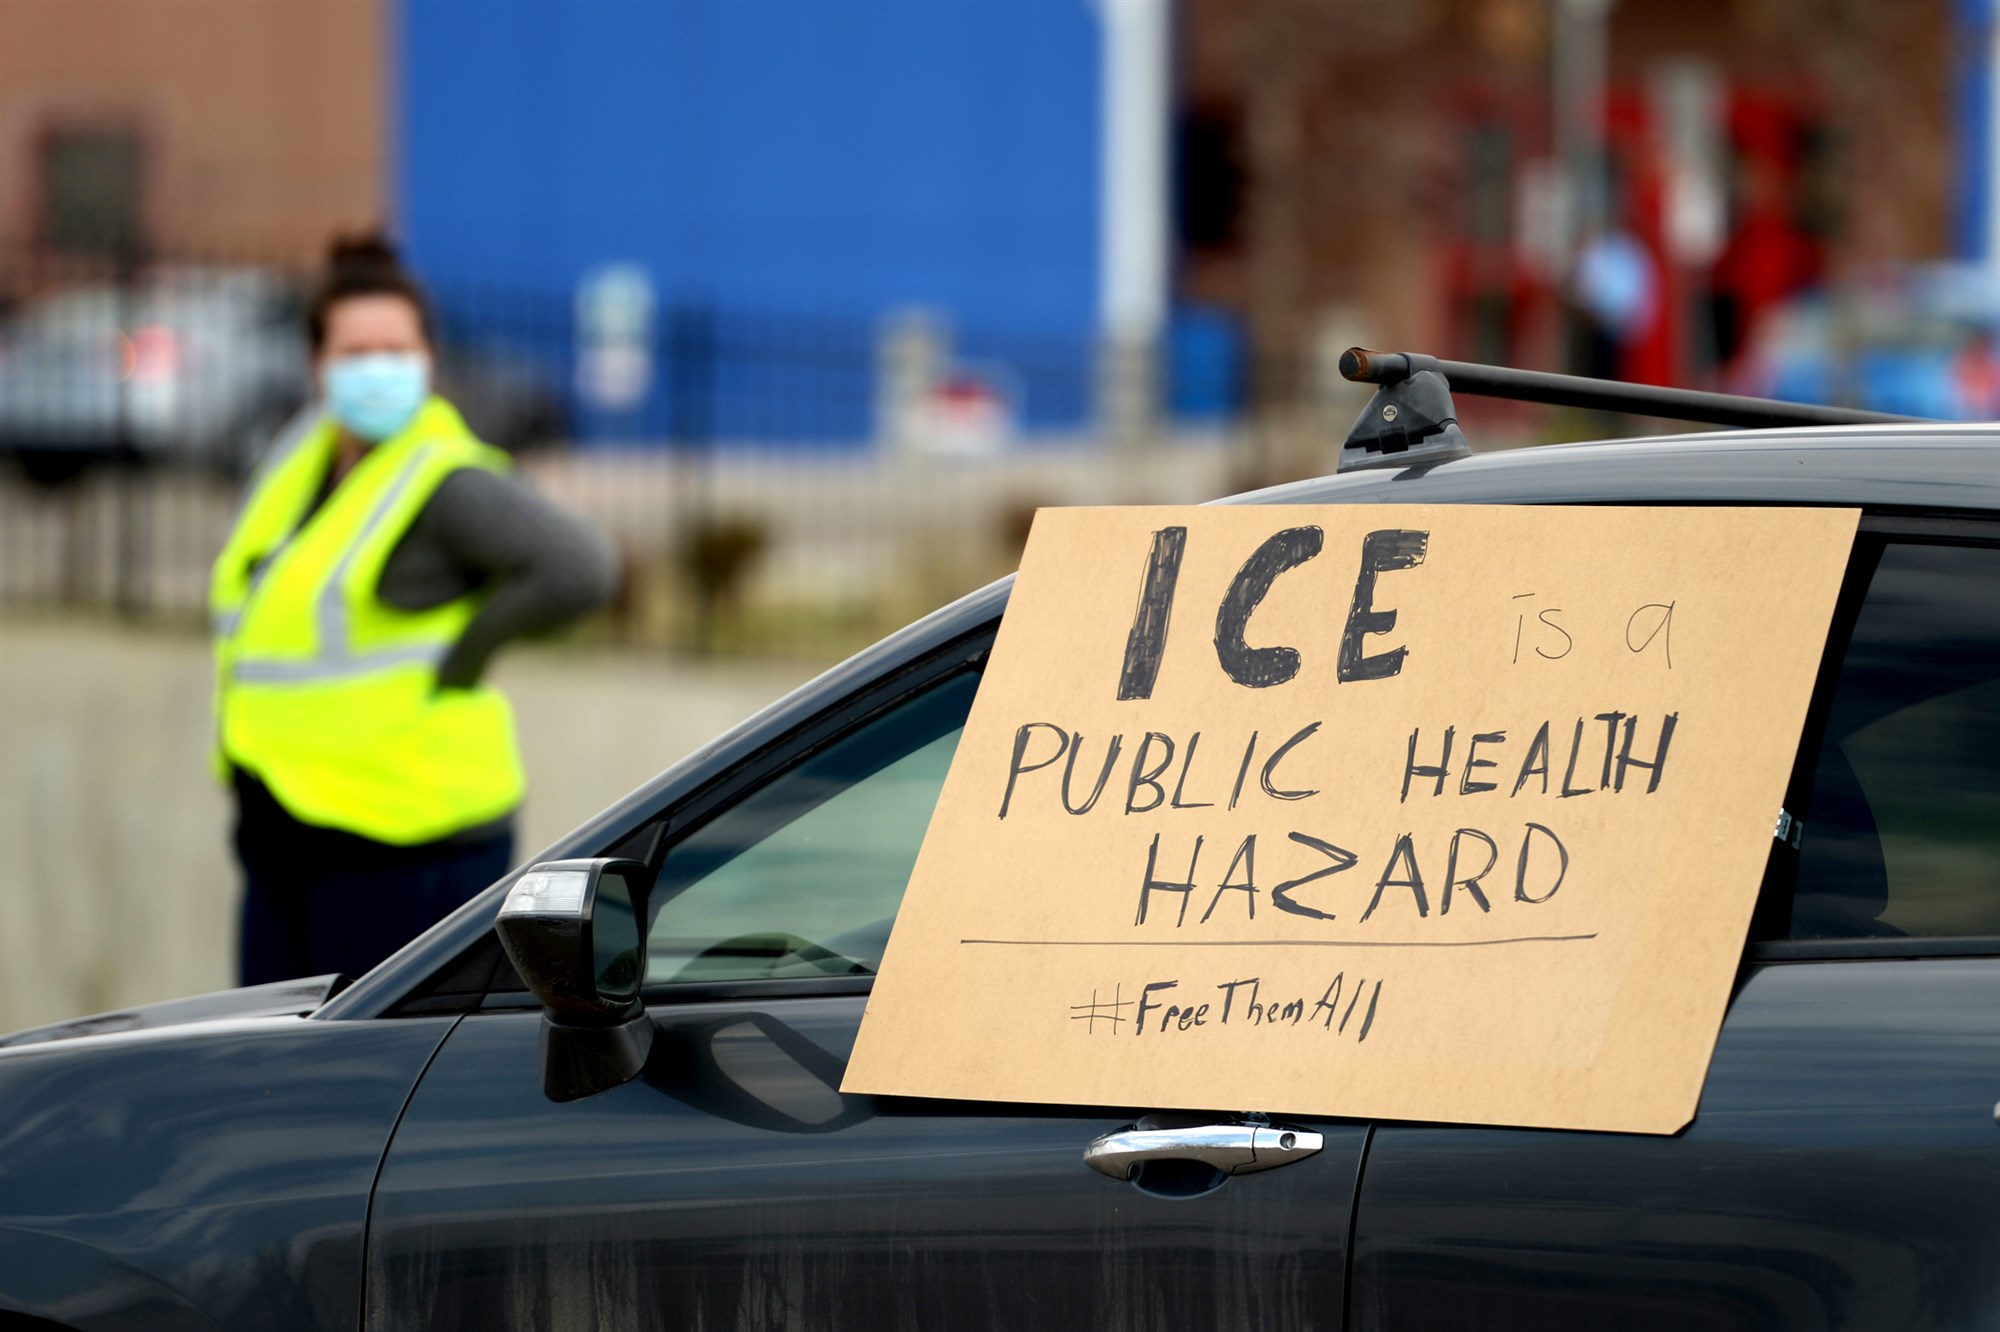 Judge Orders Release of ICE Detainees Due to COVID-19